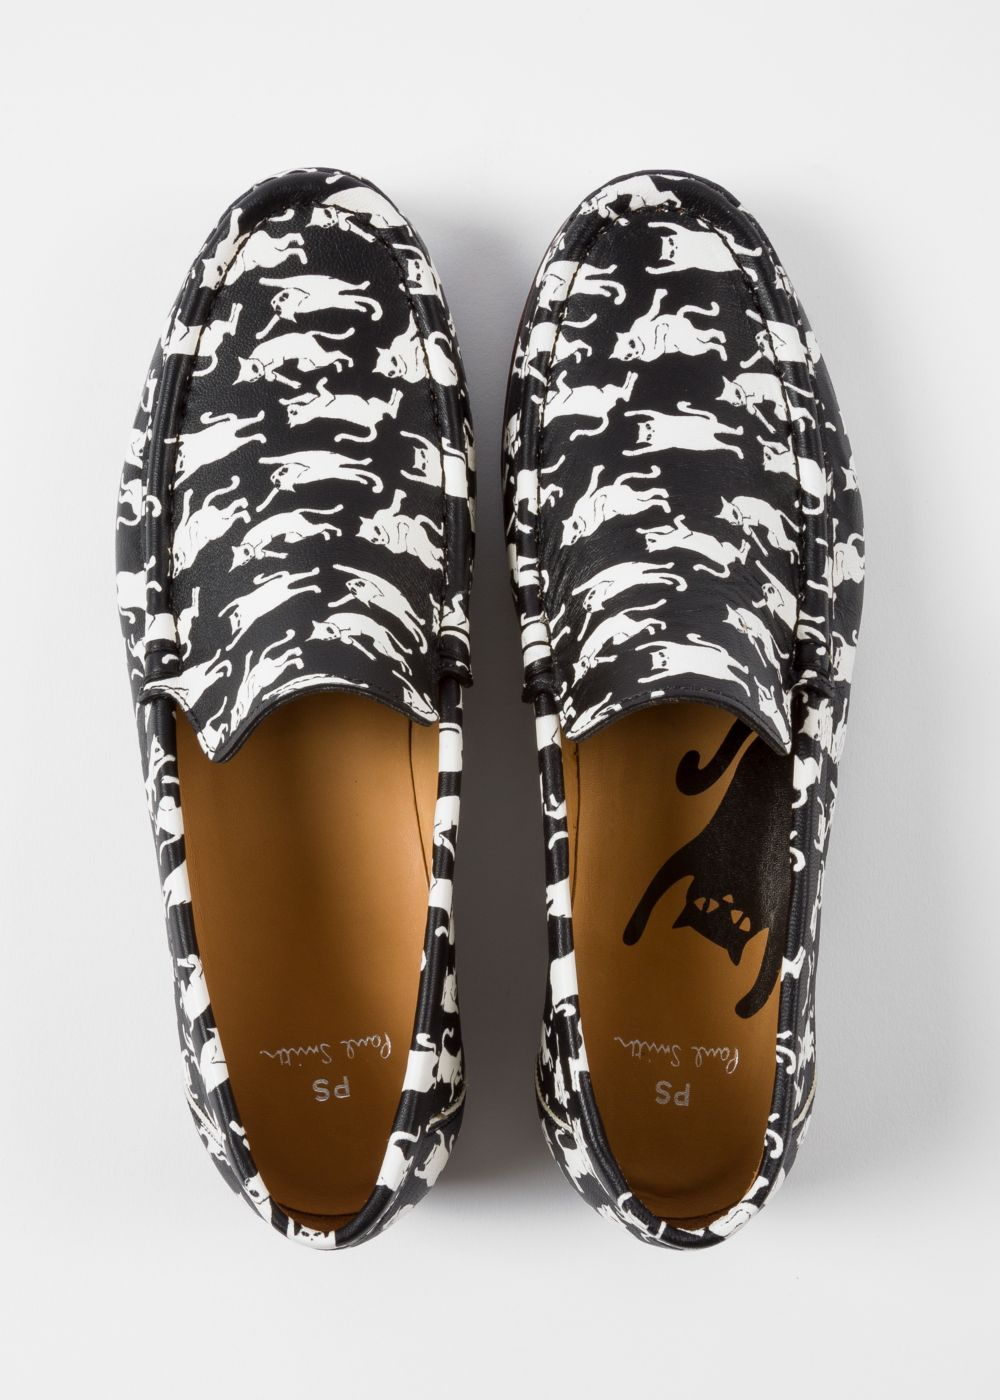 dac849fca21 Women s Black  Danny  Leather Loafers With  Dancing Cats  Print - Paul Smith  US